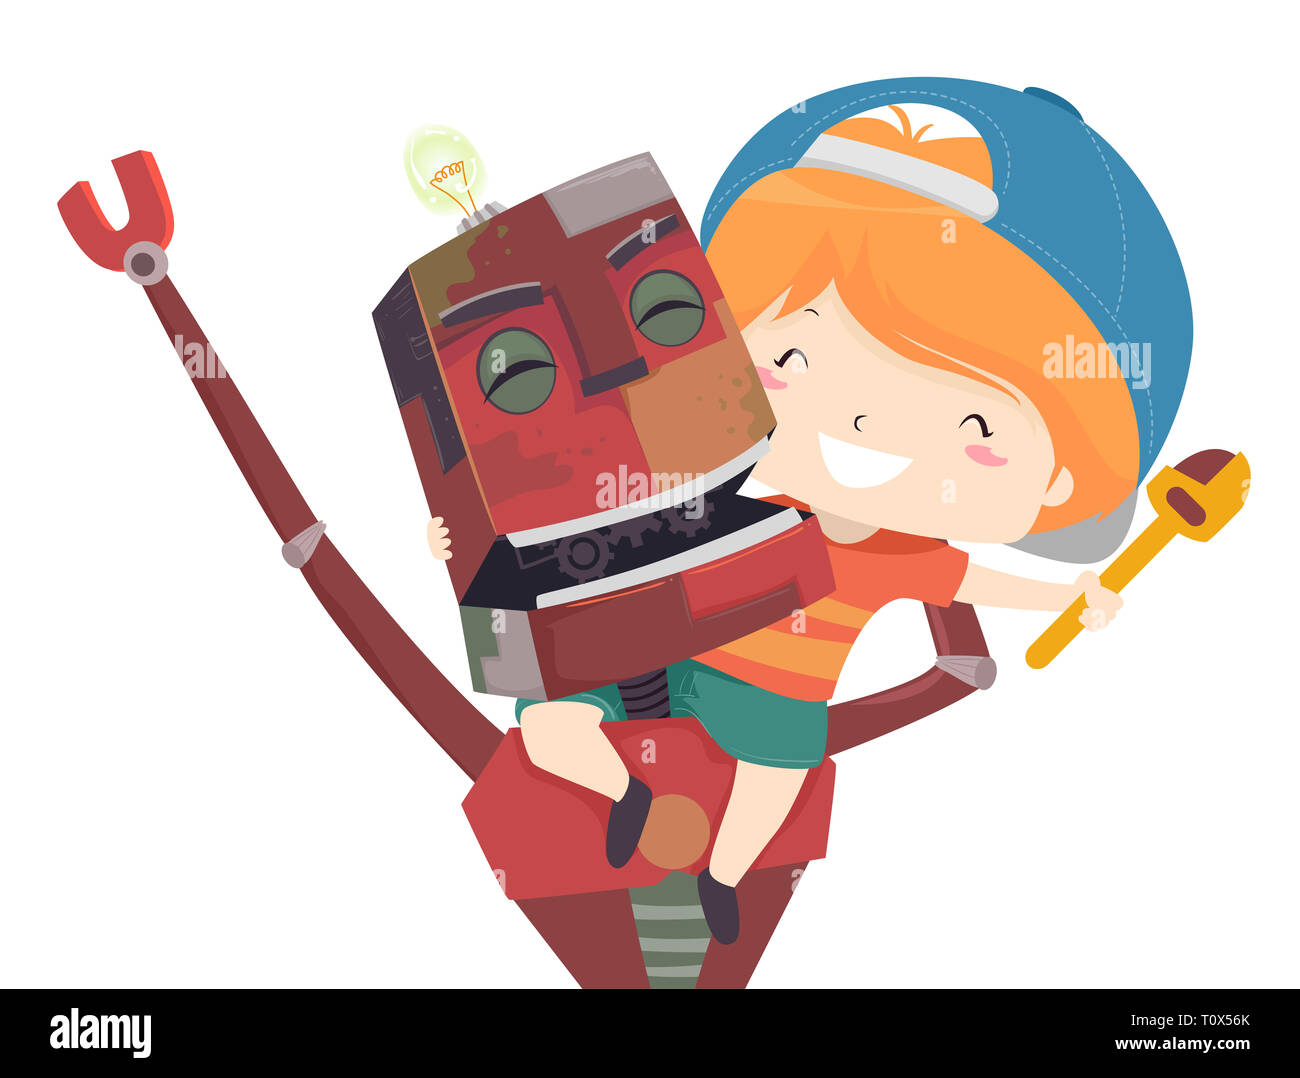 Illustration of a Kid Boy Sitting on a Happy Robots Back Made from Upcycled Materials - Stock Image